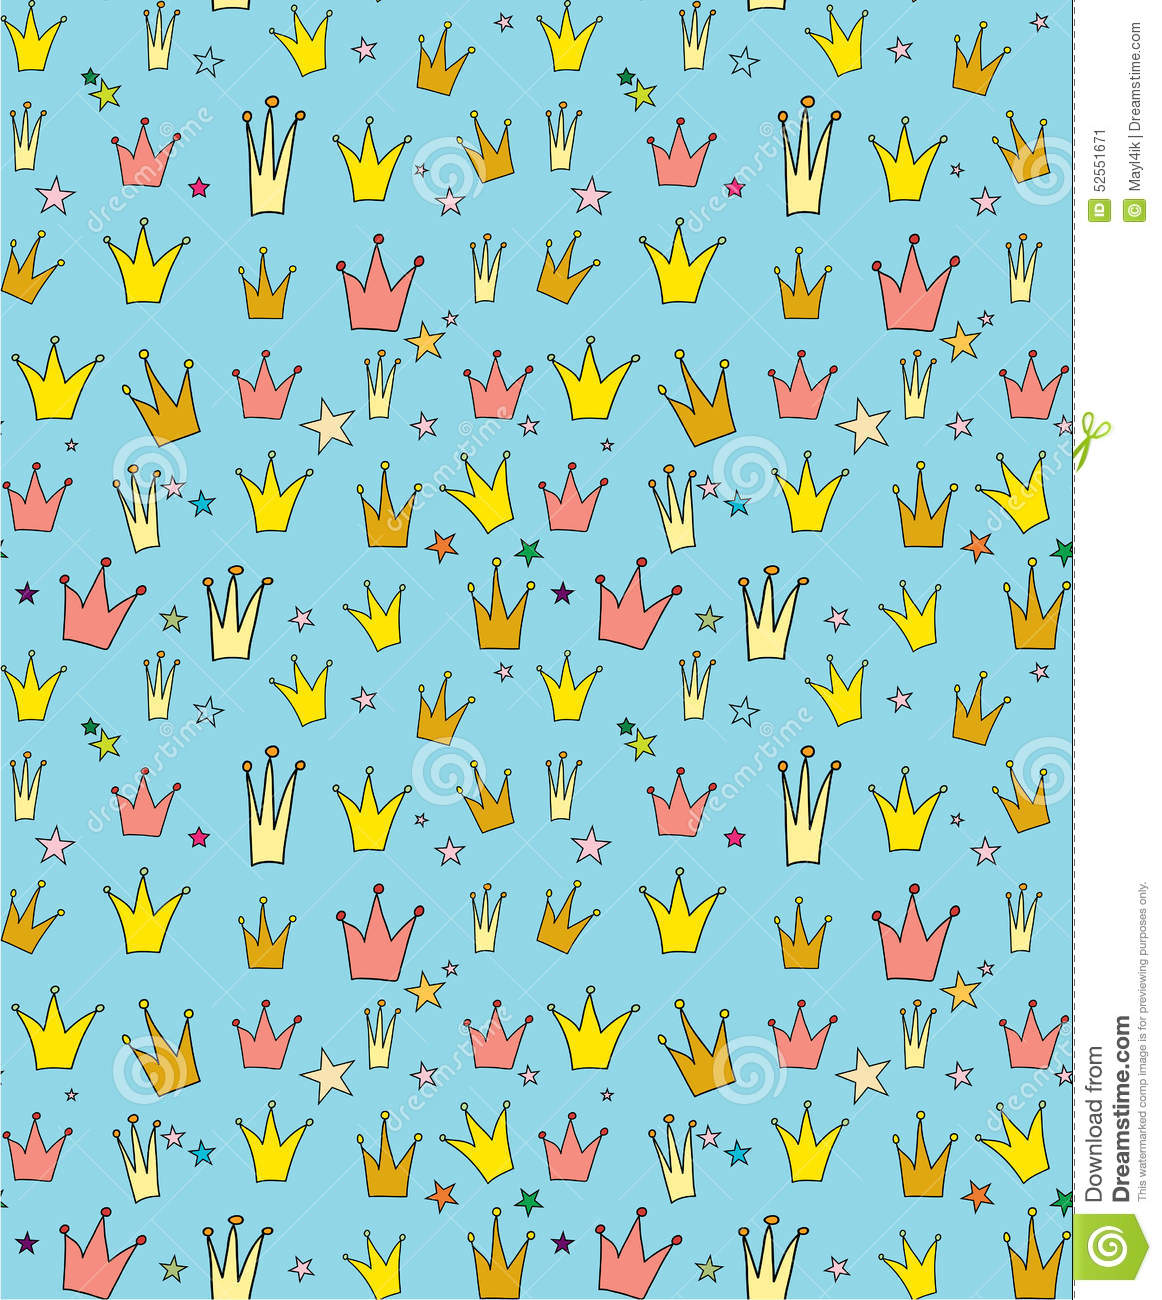 Seamless Vector Pattern Of The Crown Princess Stock Vector Illustration Of Corona Doodle 52551671 See the best crown wallpapers hd collection. dreamstime com